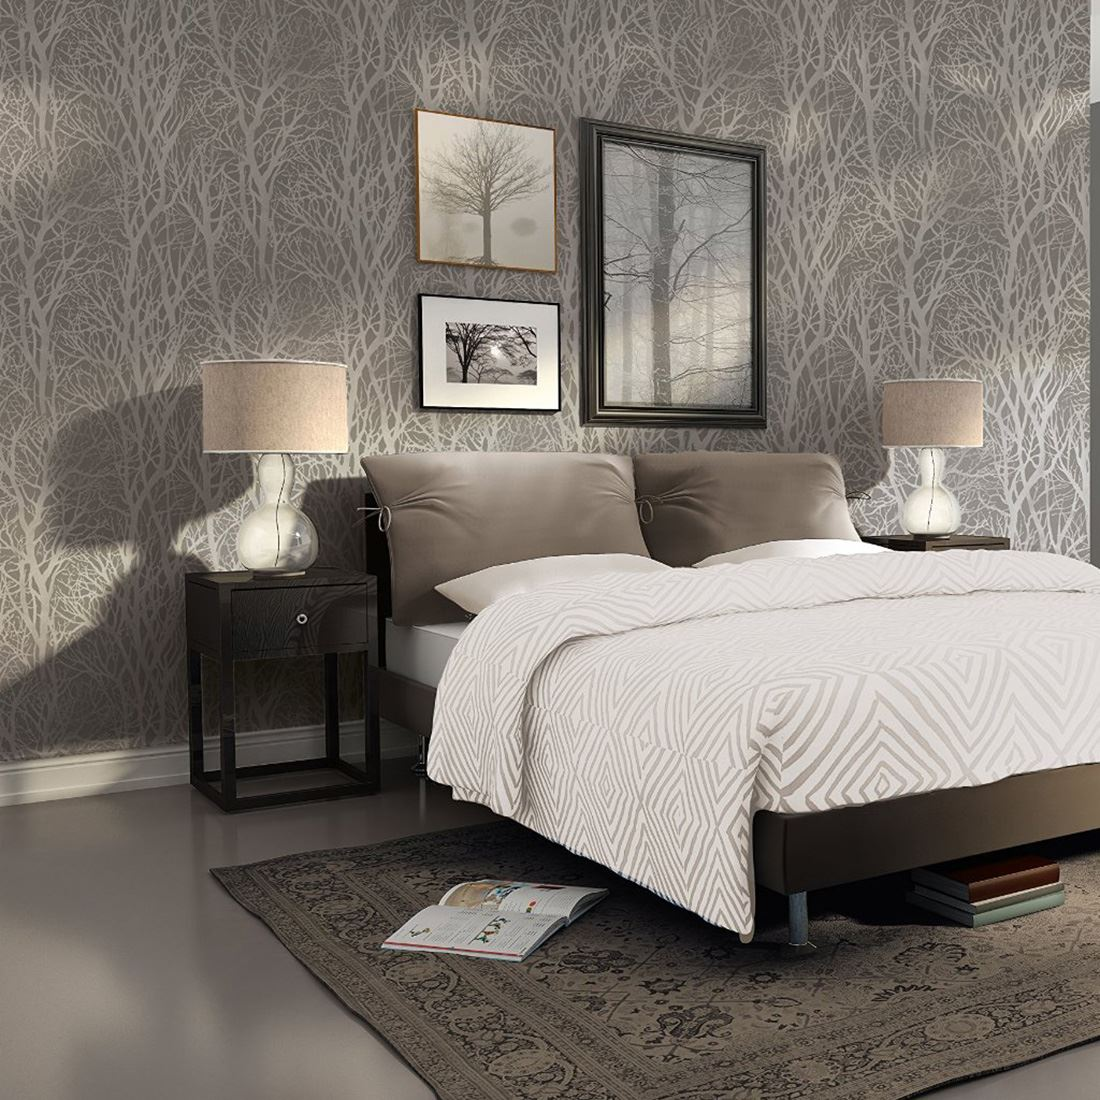 Sleigh Bedroom Sets King Bedroom Jpg Simple Bedroom Colour Design Bedroom Accessories Uk: AS CREATION TREE BRANCHES WALLPAPER FEATURE WALL GREY